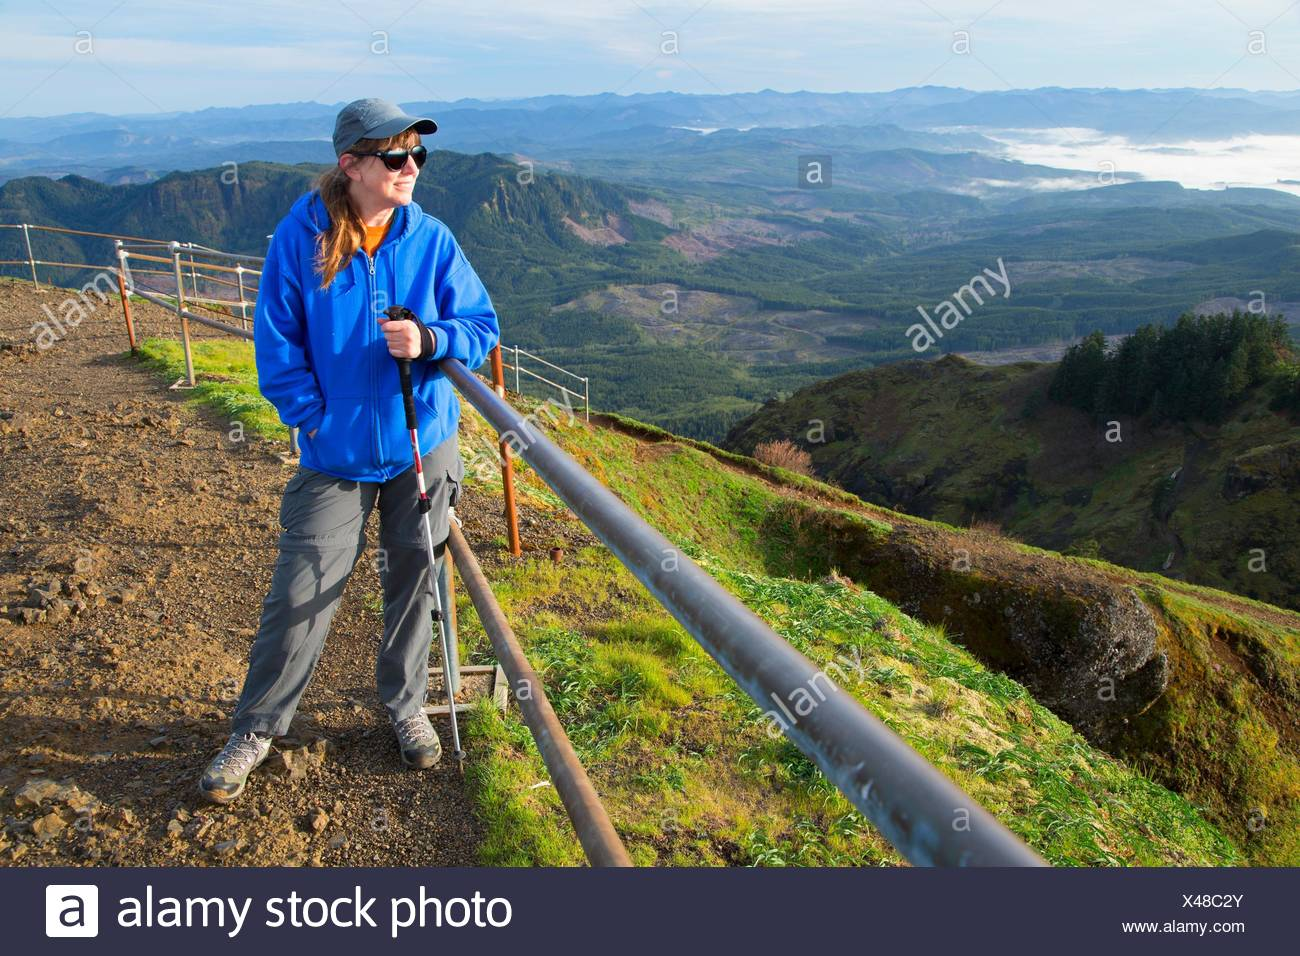 Hiker on summit viewpoint, Saddle Mountain State Park, Oregon. - Stock Image